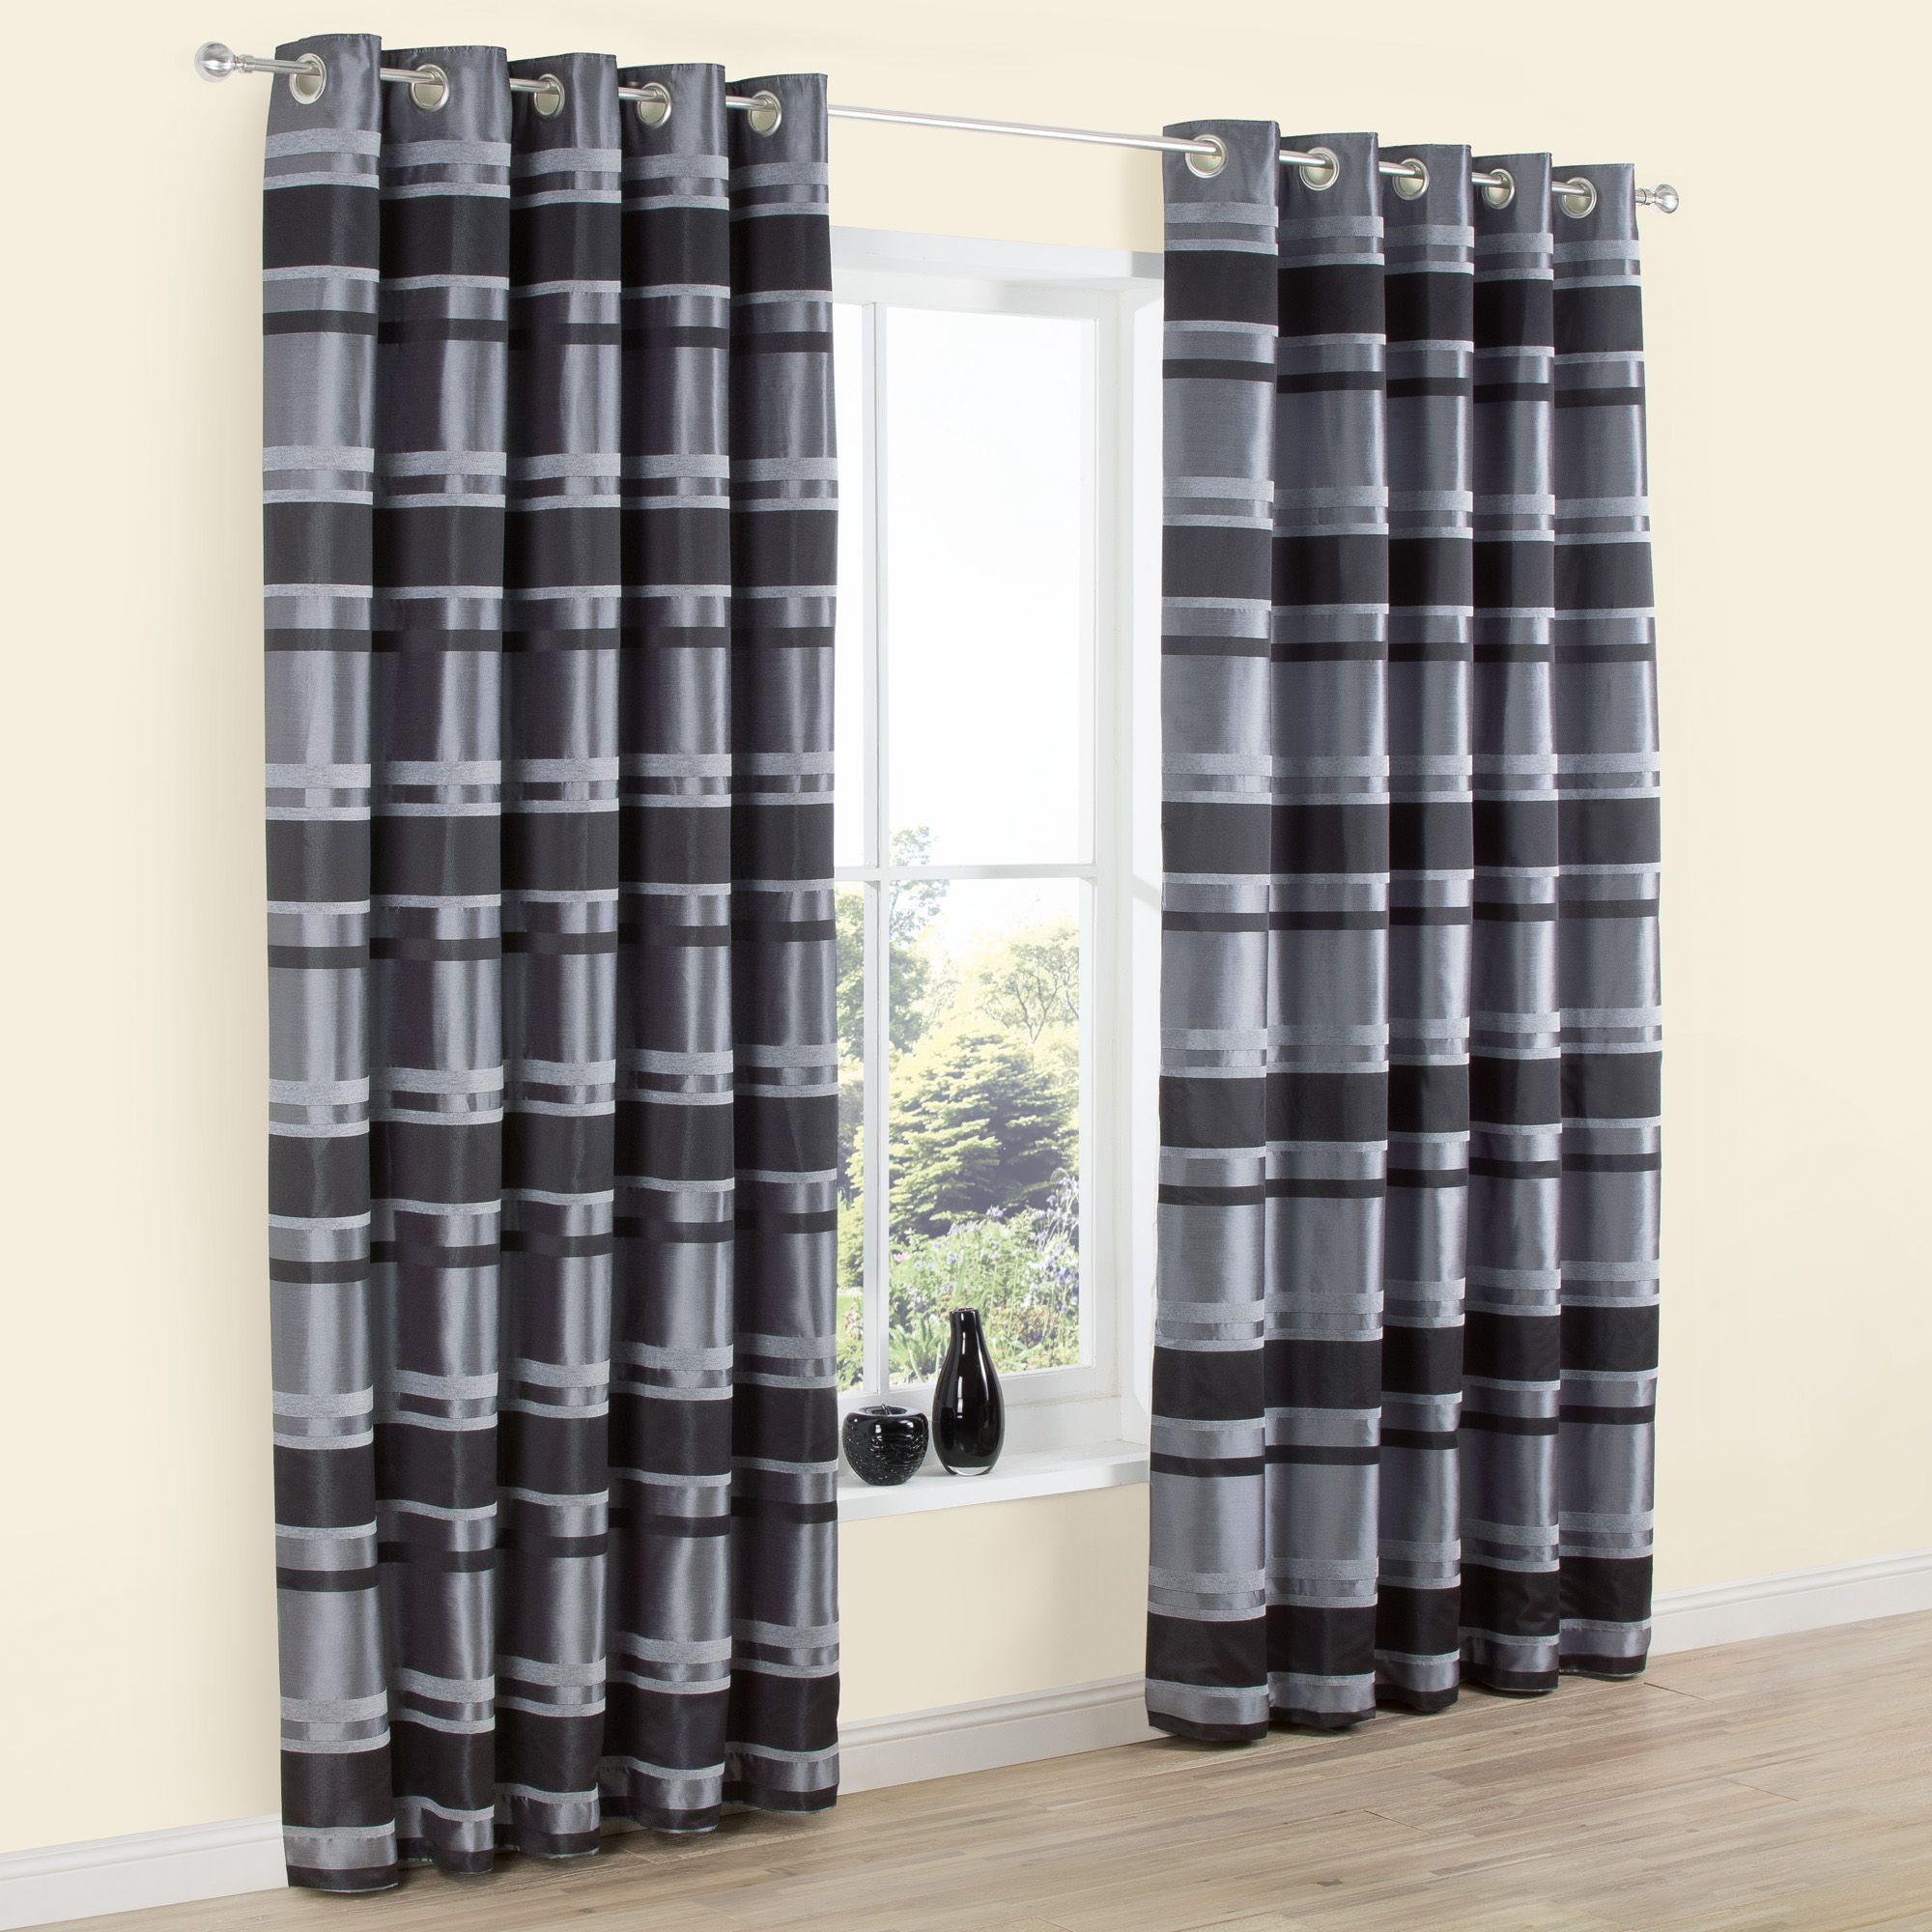 white panels trellis and rod reviews wayfair sheer semi sweet treatments drapes window designs curtain geometric pdx pocket black jojo